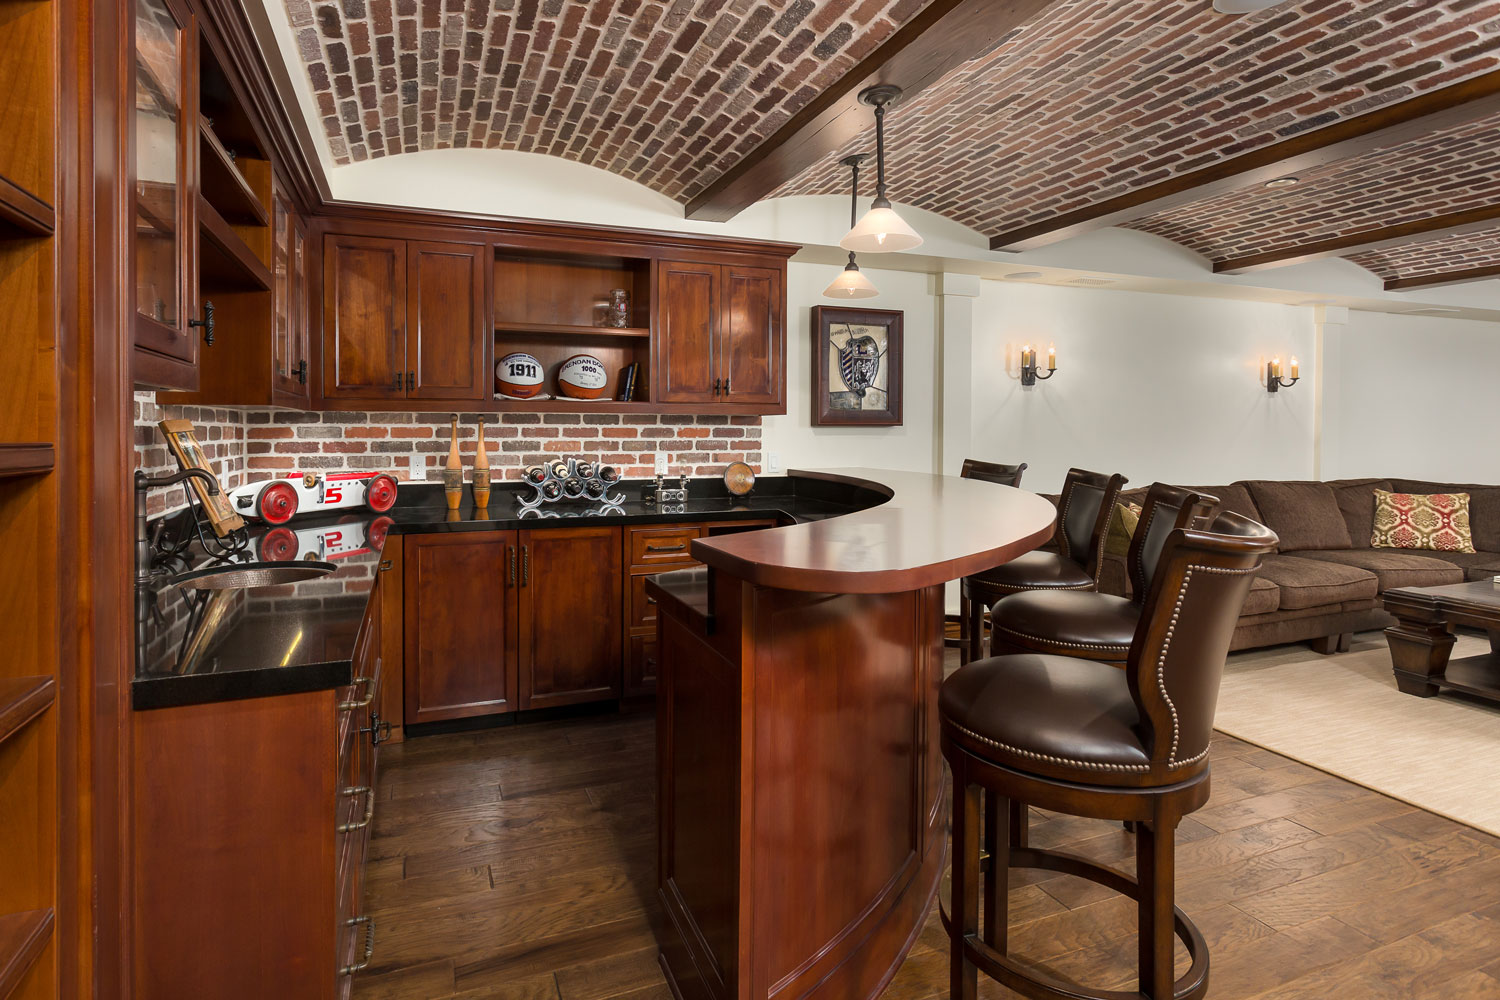 home-bar-Chelsea-basement-brick-barrelvaulted.jpg